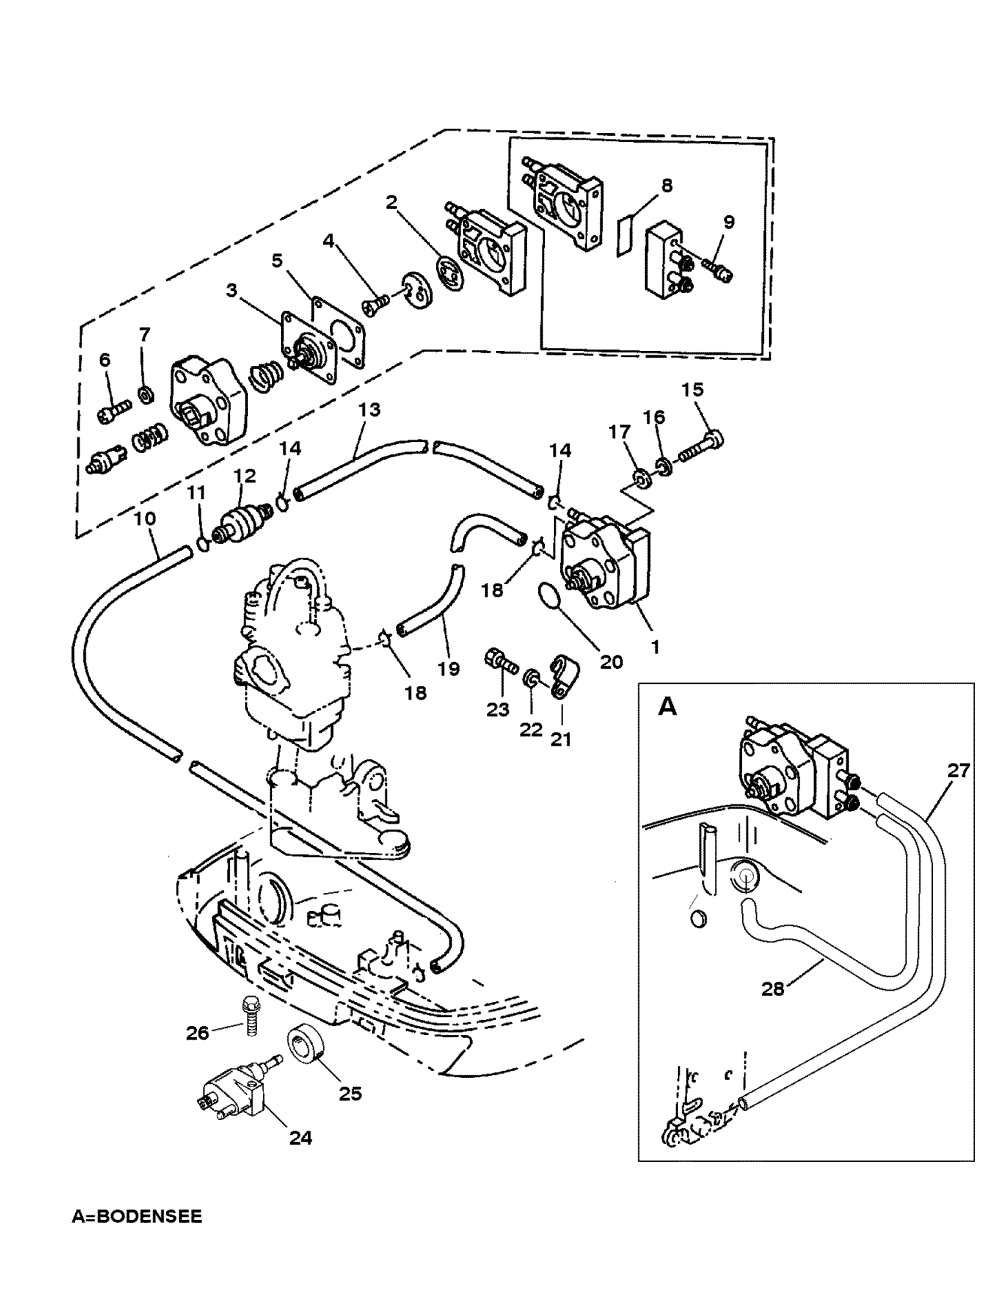 medium resolution of fuel pump for mariner mercury 9 9 8 bondensee 4 stroke 1996 mercury marine mercury outboard 1f10203sd fuel pump diagram and